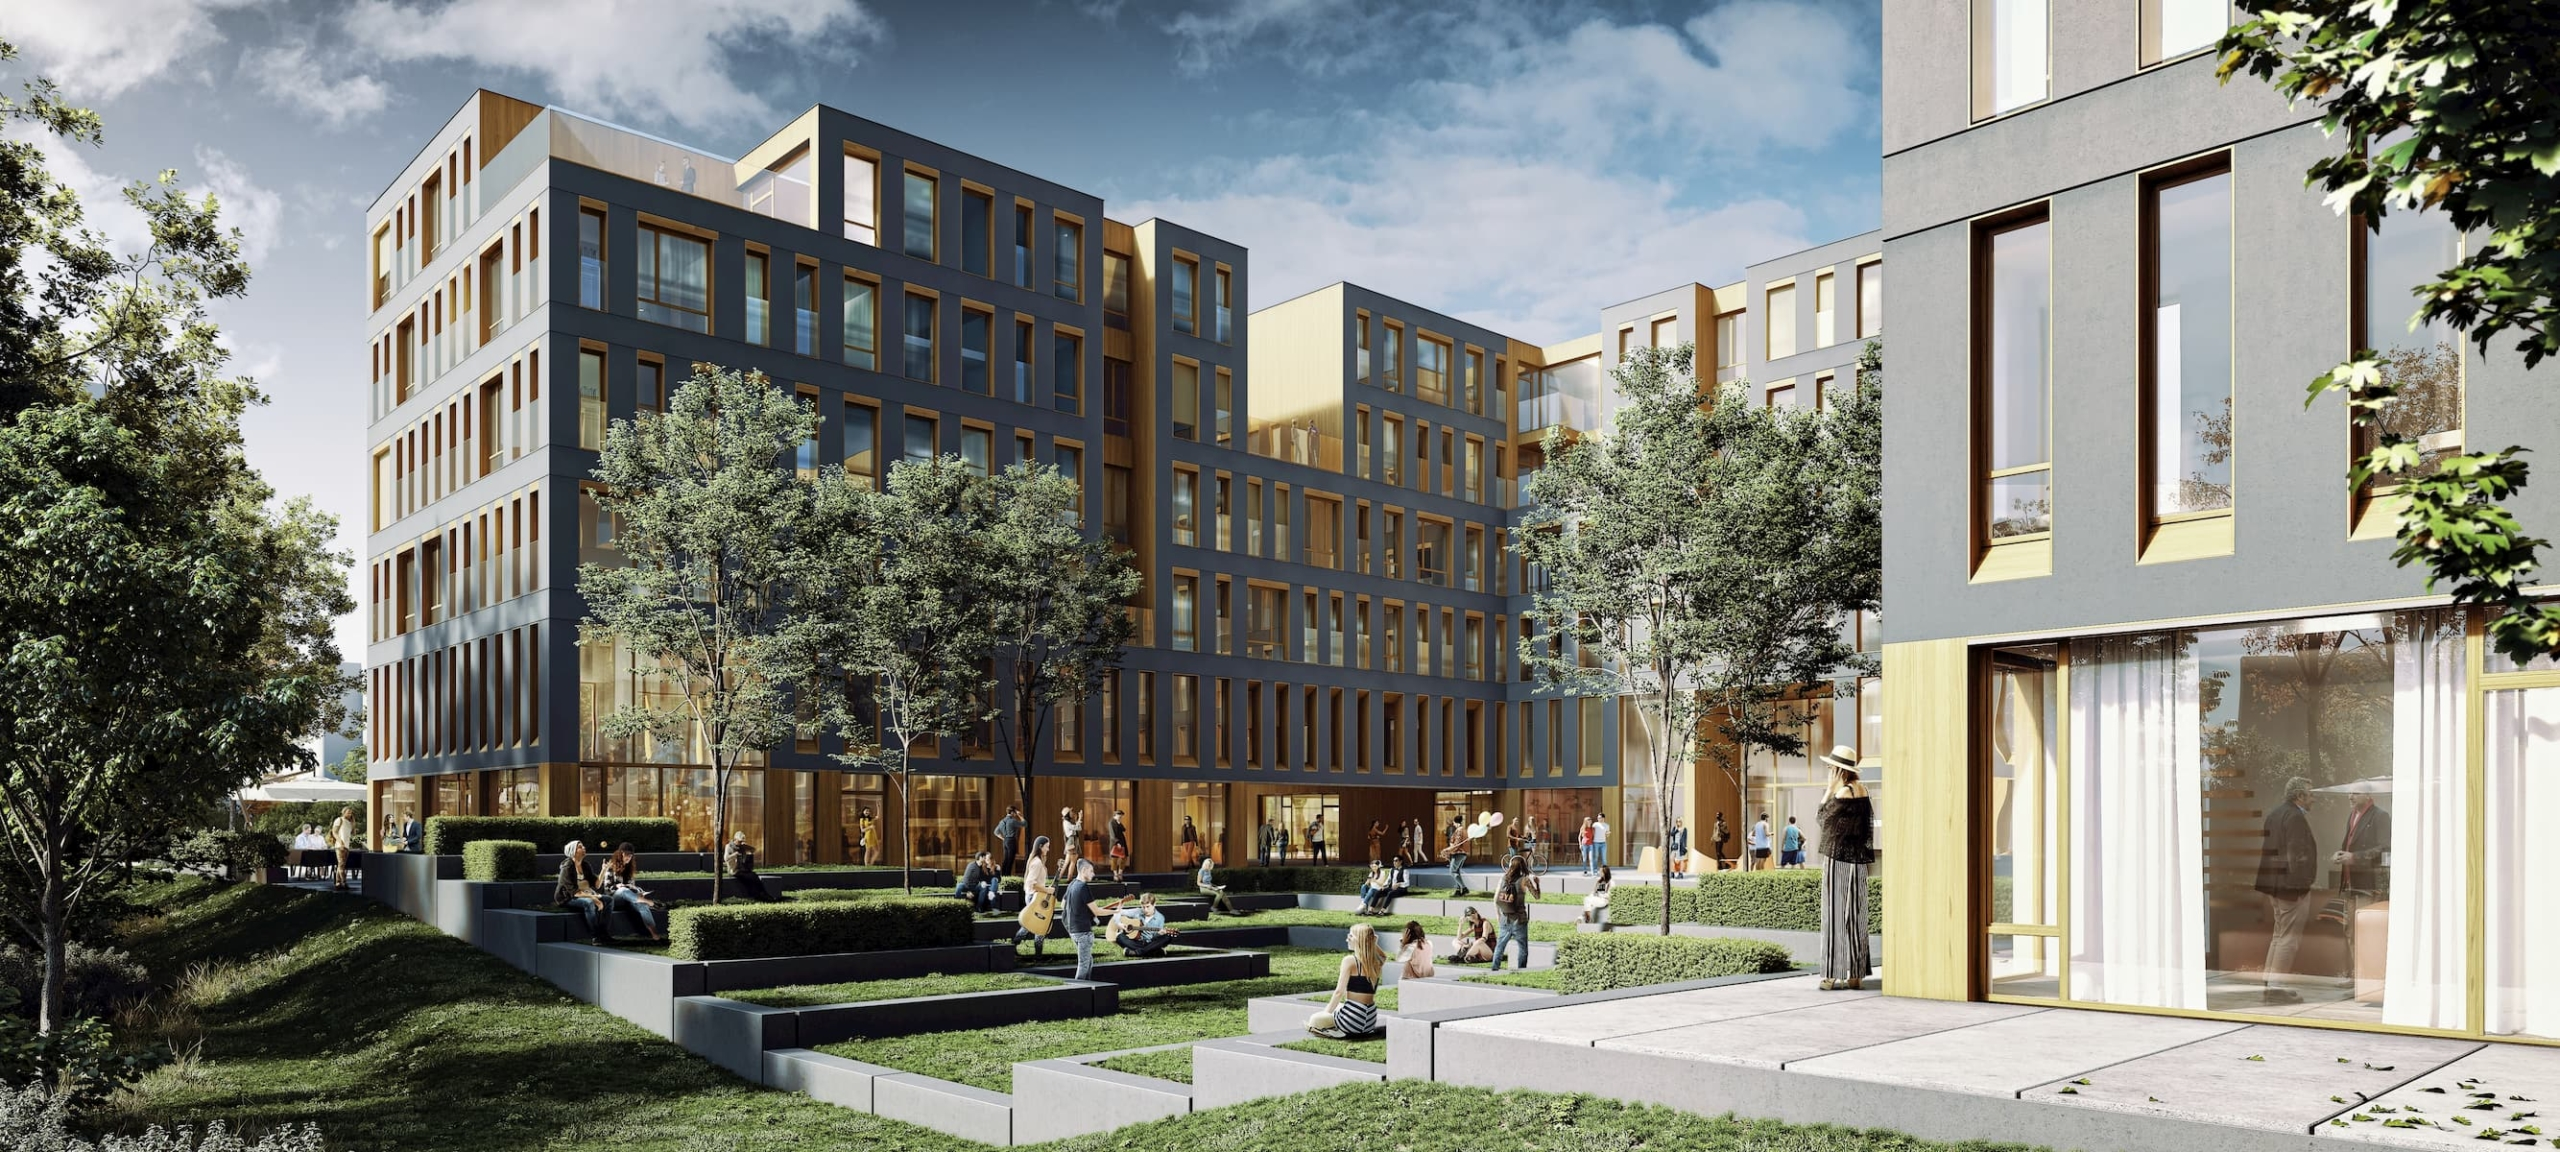 Student hostel in Warsaw Architectural Competition Entry 4AM Architekci 2019